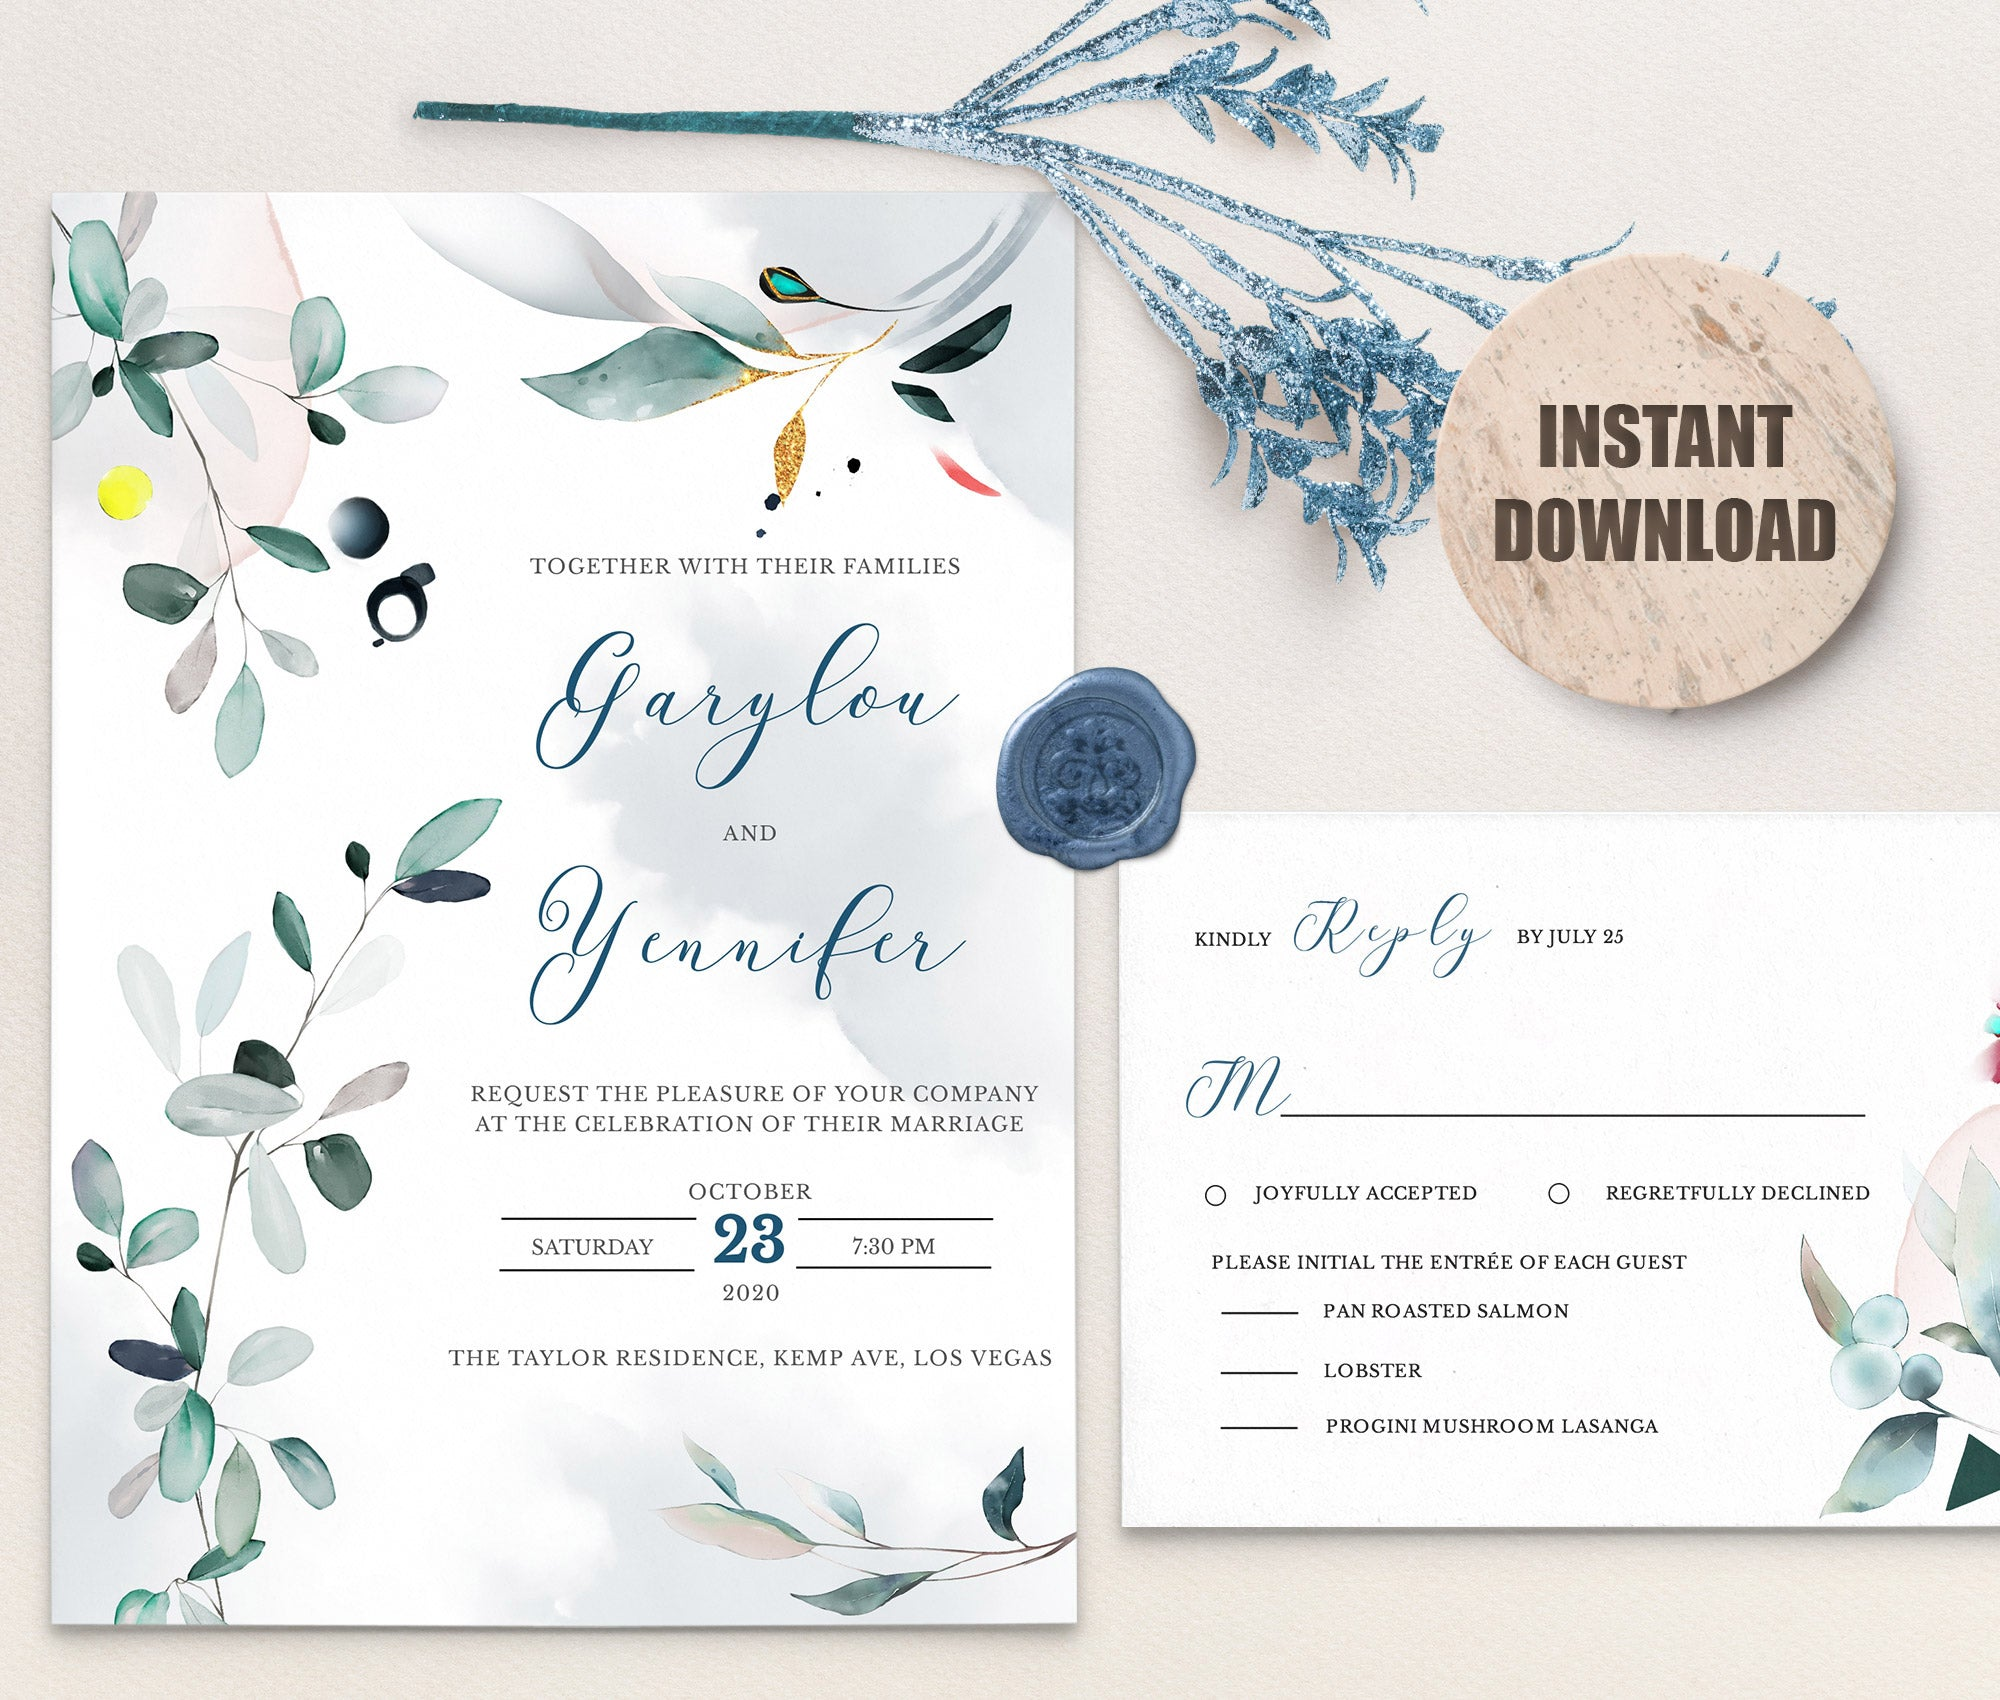 SPMR - Wedding Invitation and RSVP set 9 - Greenlanderdesign